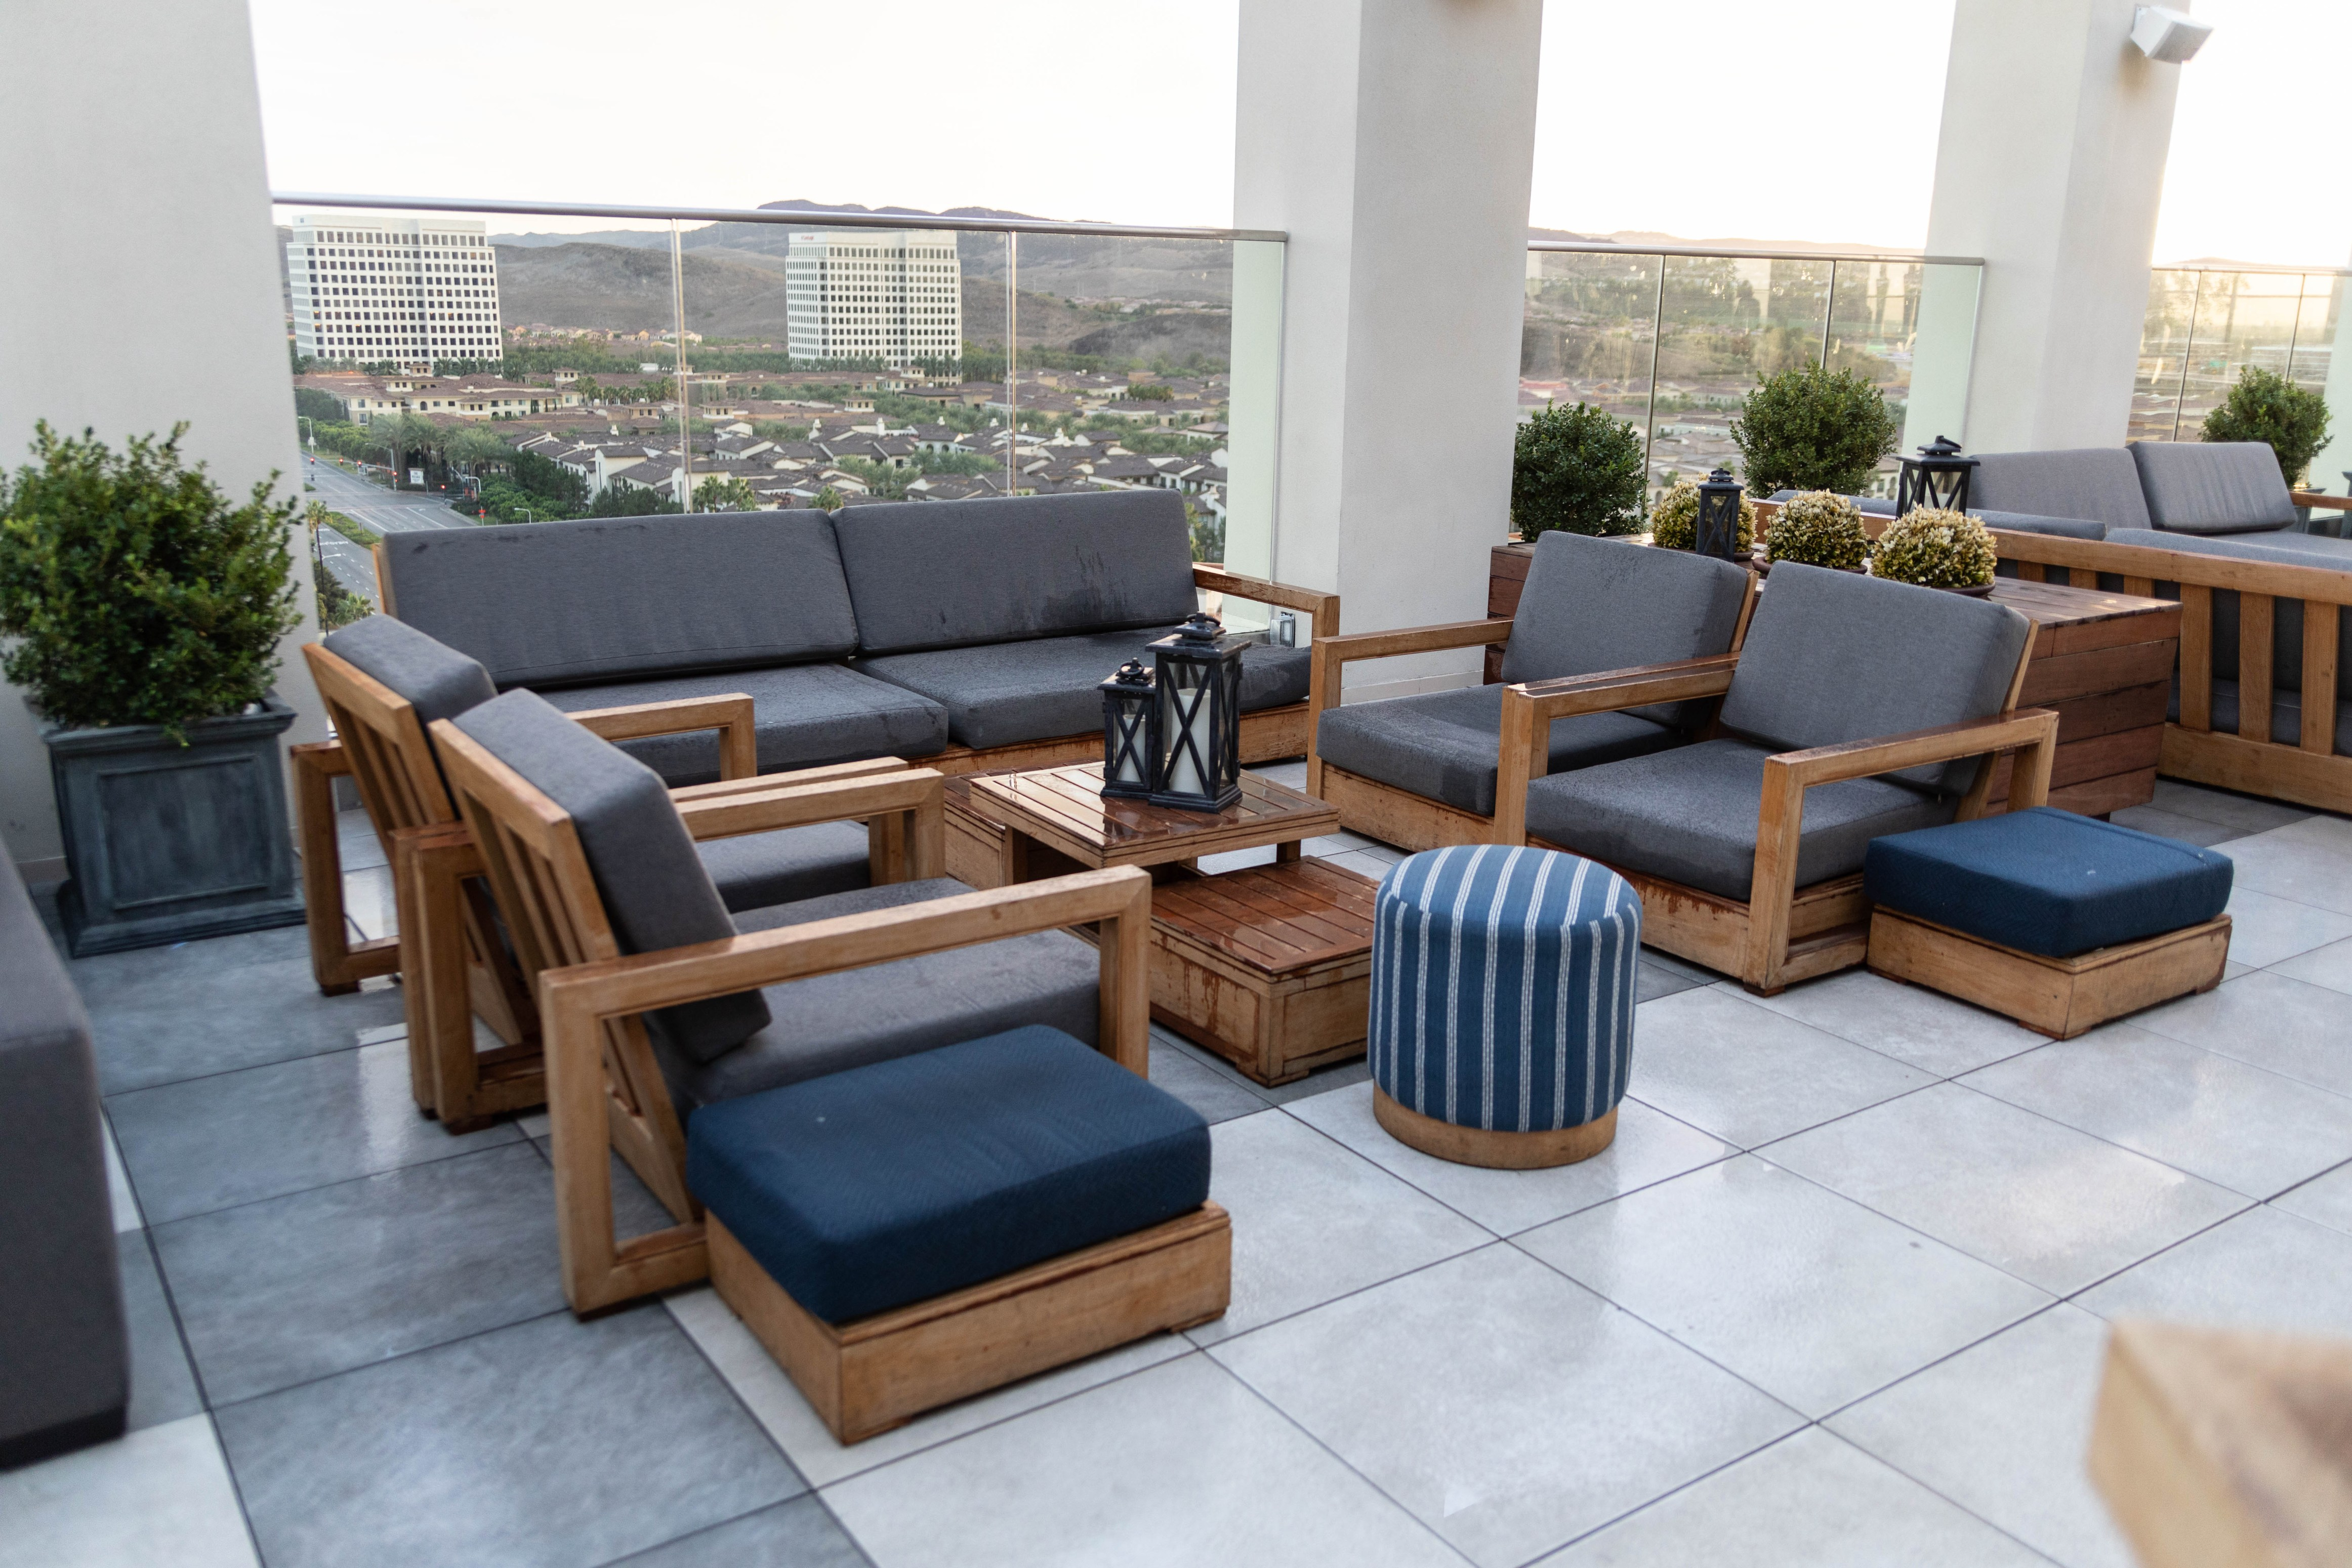 Luxury Hotels of the World: Irvine Spectrum Complete Review with Photos Rooftop Bar